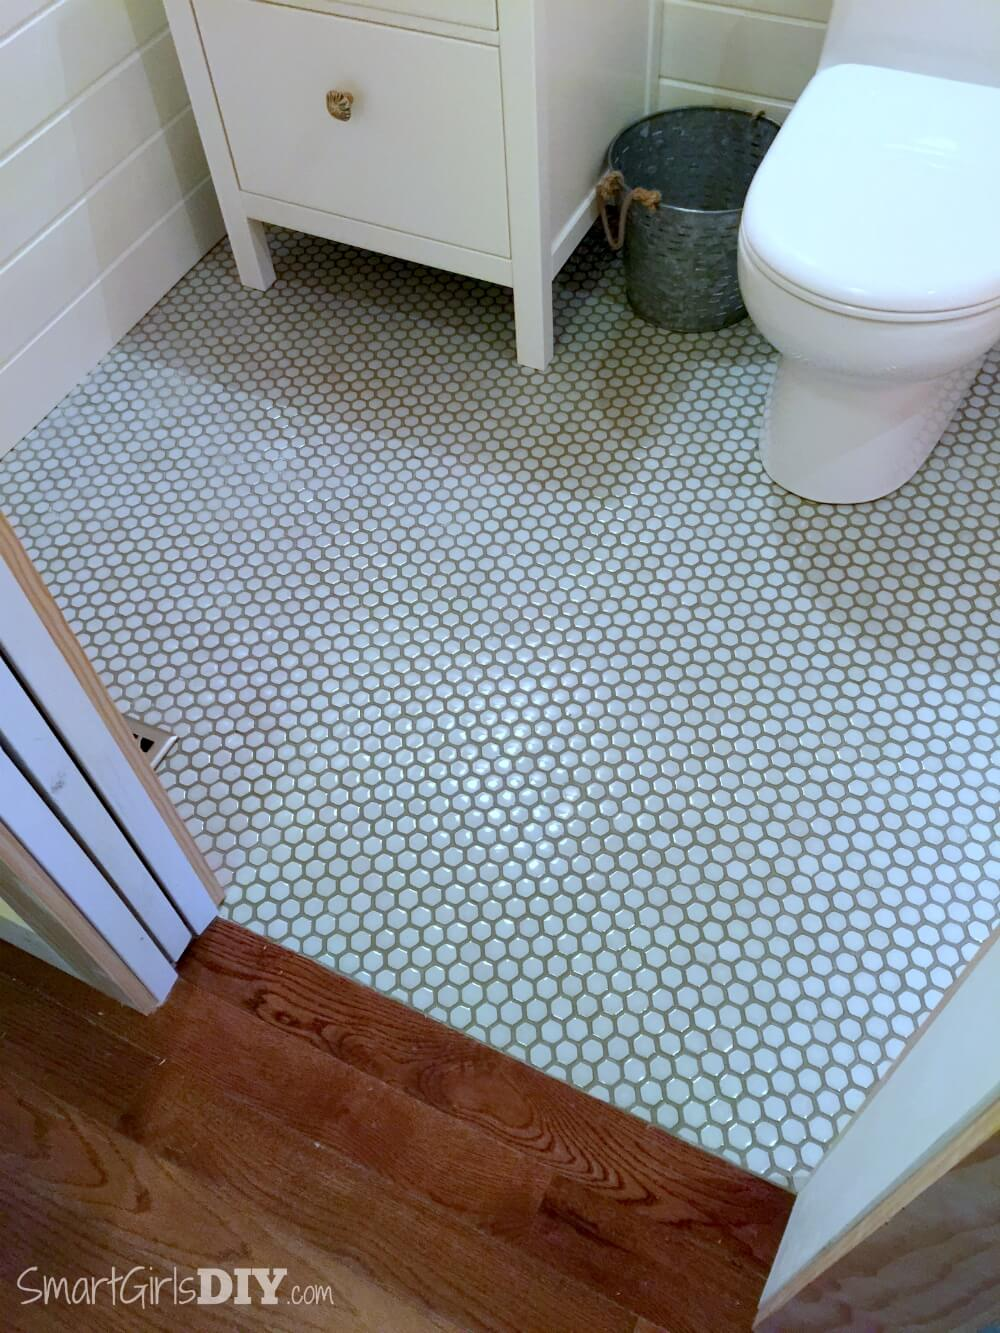 Guest bathroom 7 diy hex tile floor bathroom makeover hexagon floor tiles with painted grout lines transition to hardwood floor dailygadgetfo Images